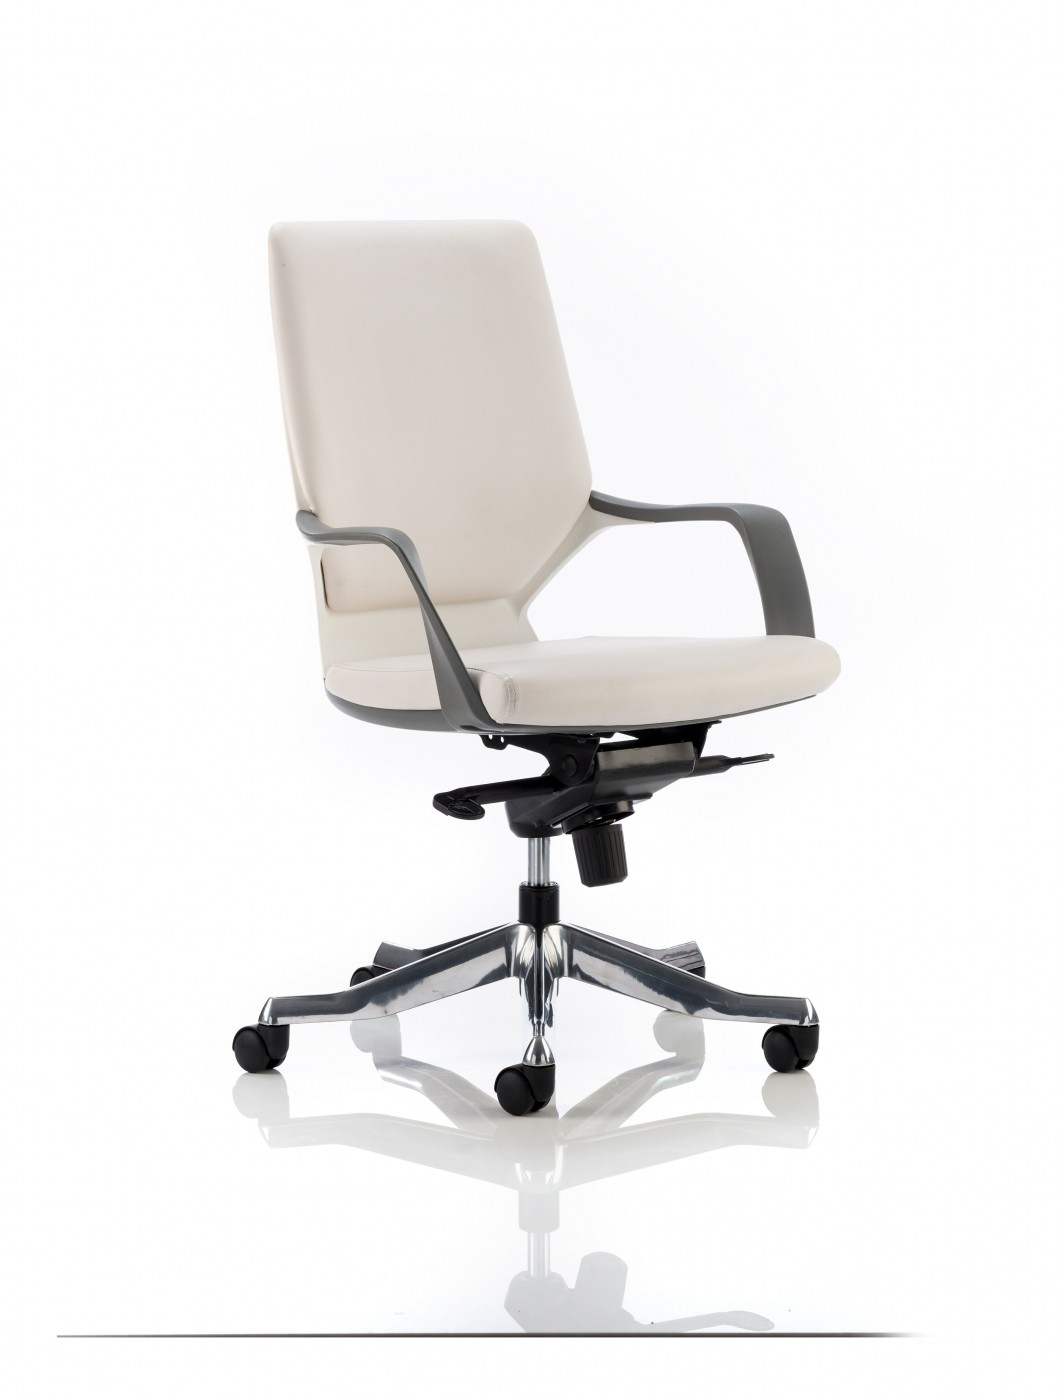 Dynamic Xenon Medium Executive White Leather Office Chair   Enlarged View